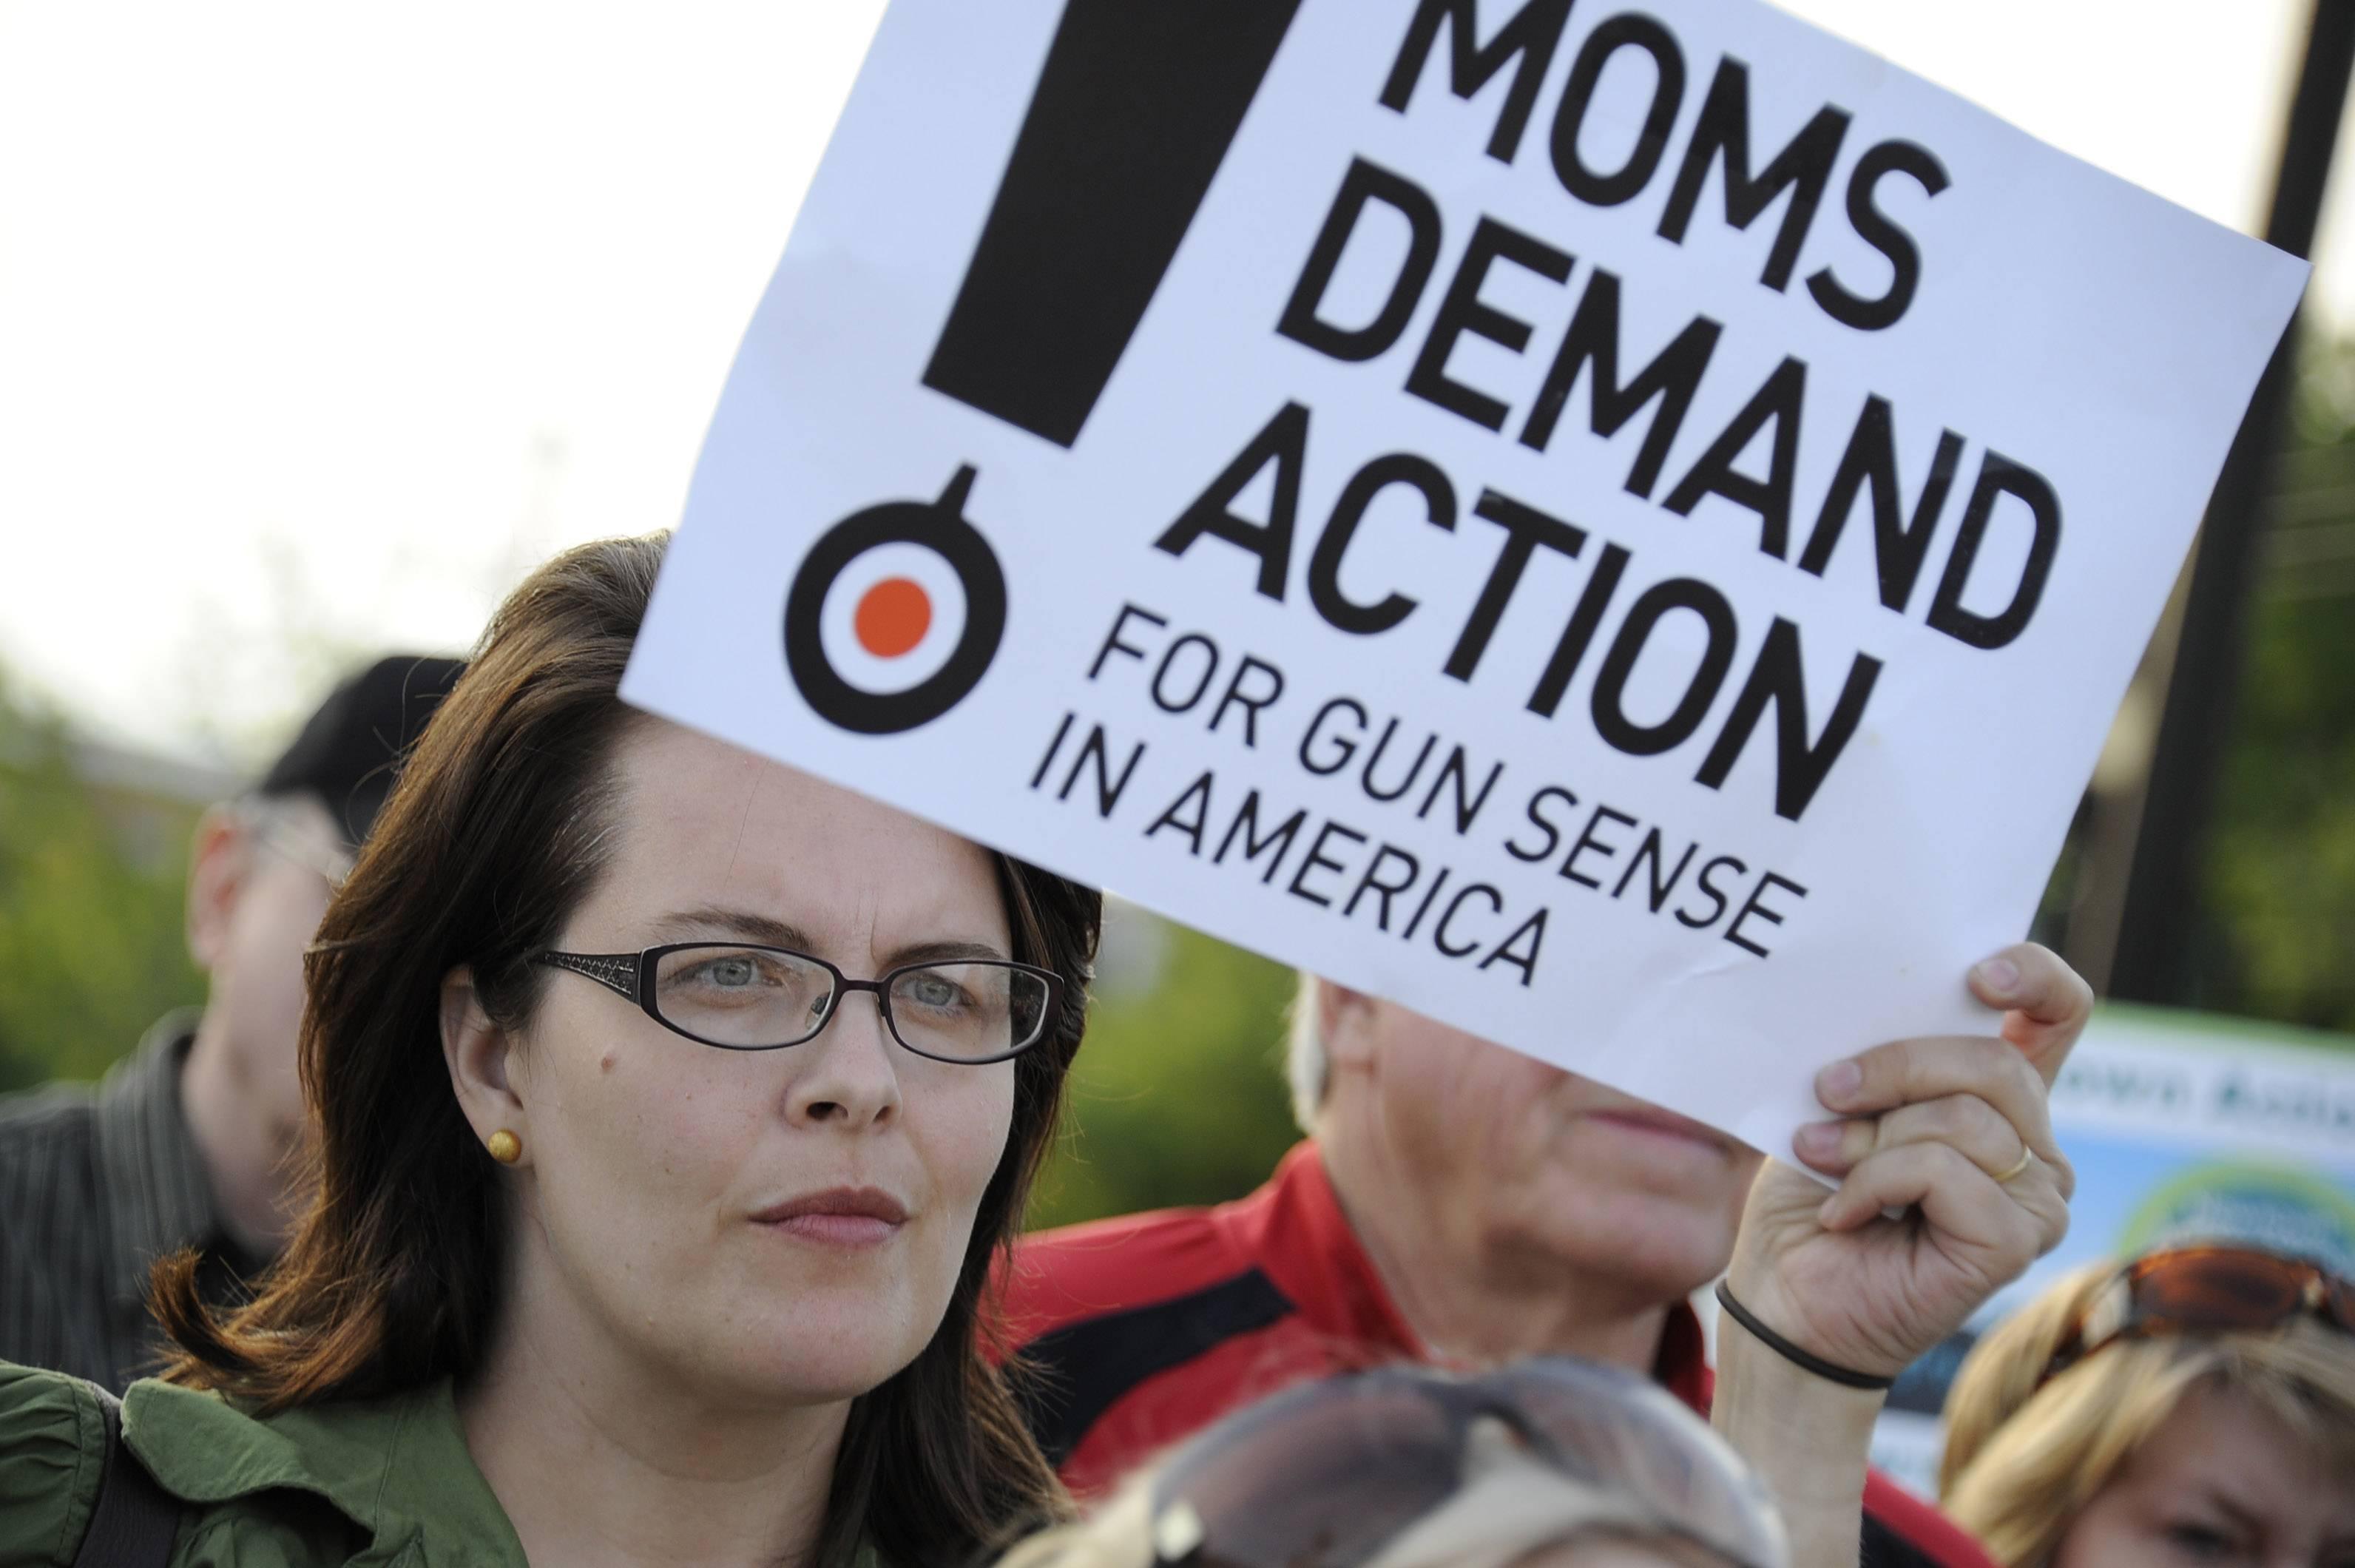 Christine Fenno, of Oak Park, protests gun violence at a June 2013 vigil in Palatine, marking the six-month anniversary of the Sandy Hook shootings.